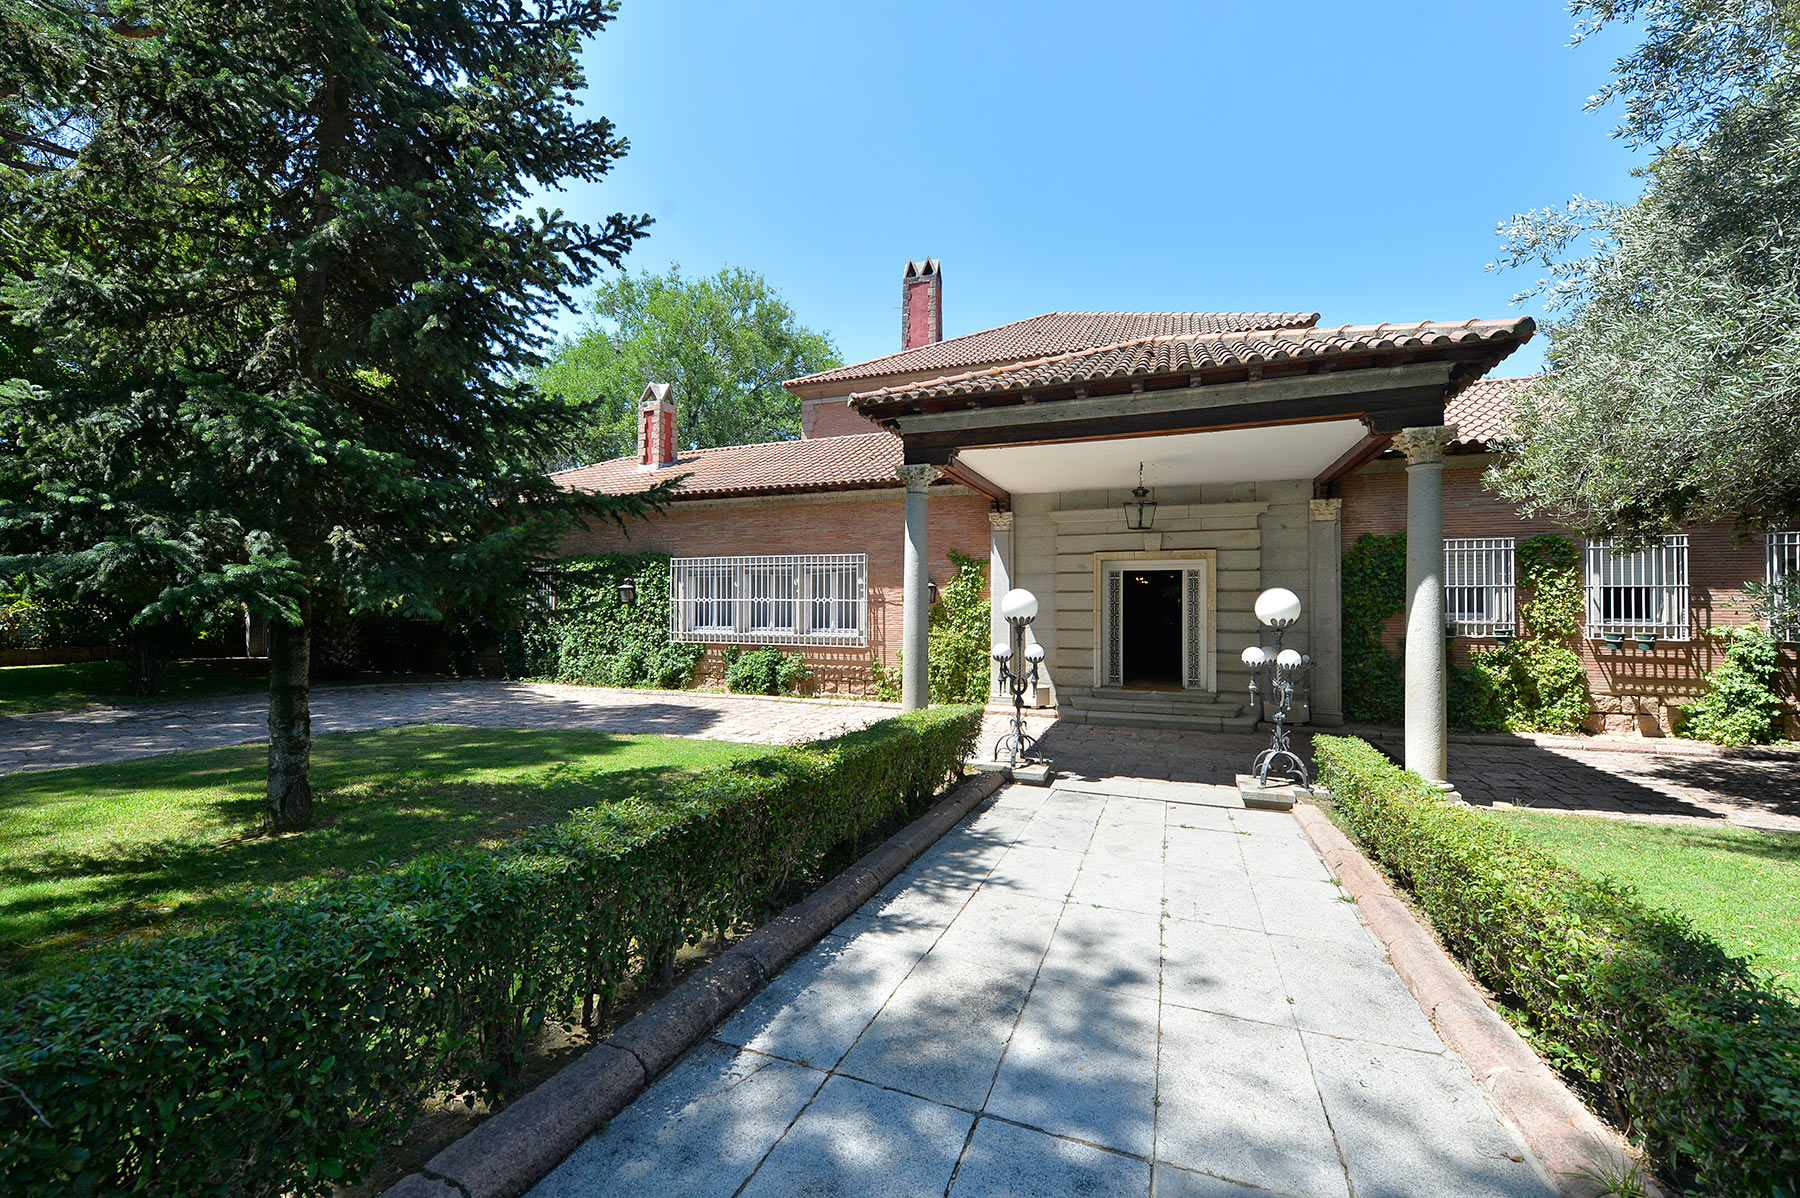 Casa Unifamiliar por un Venta en Single-family home in Puerta de Hierro Madrid, Madrid, España